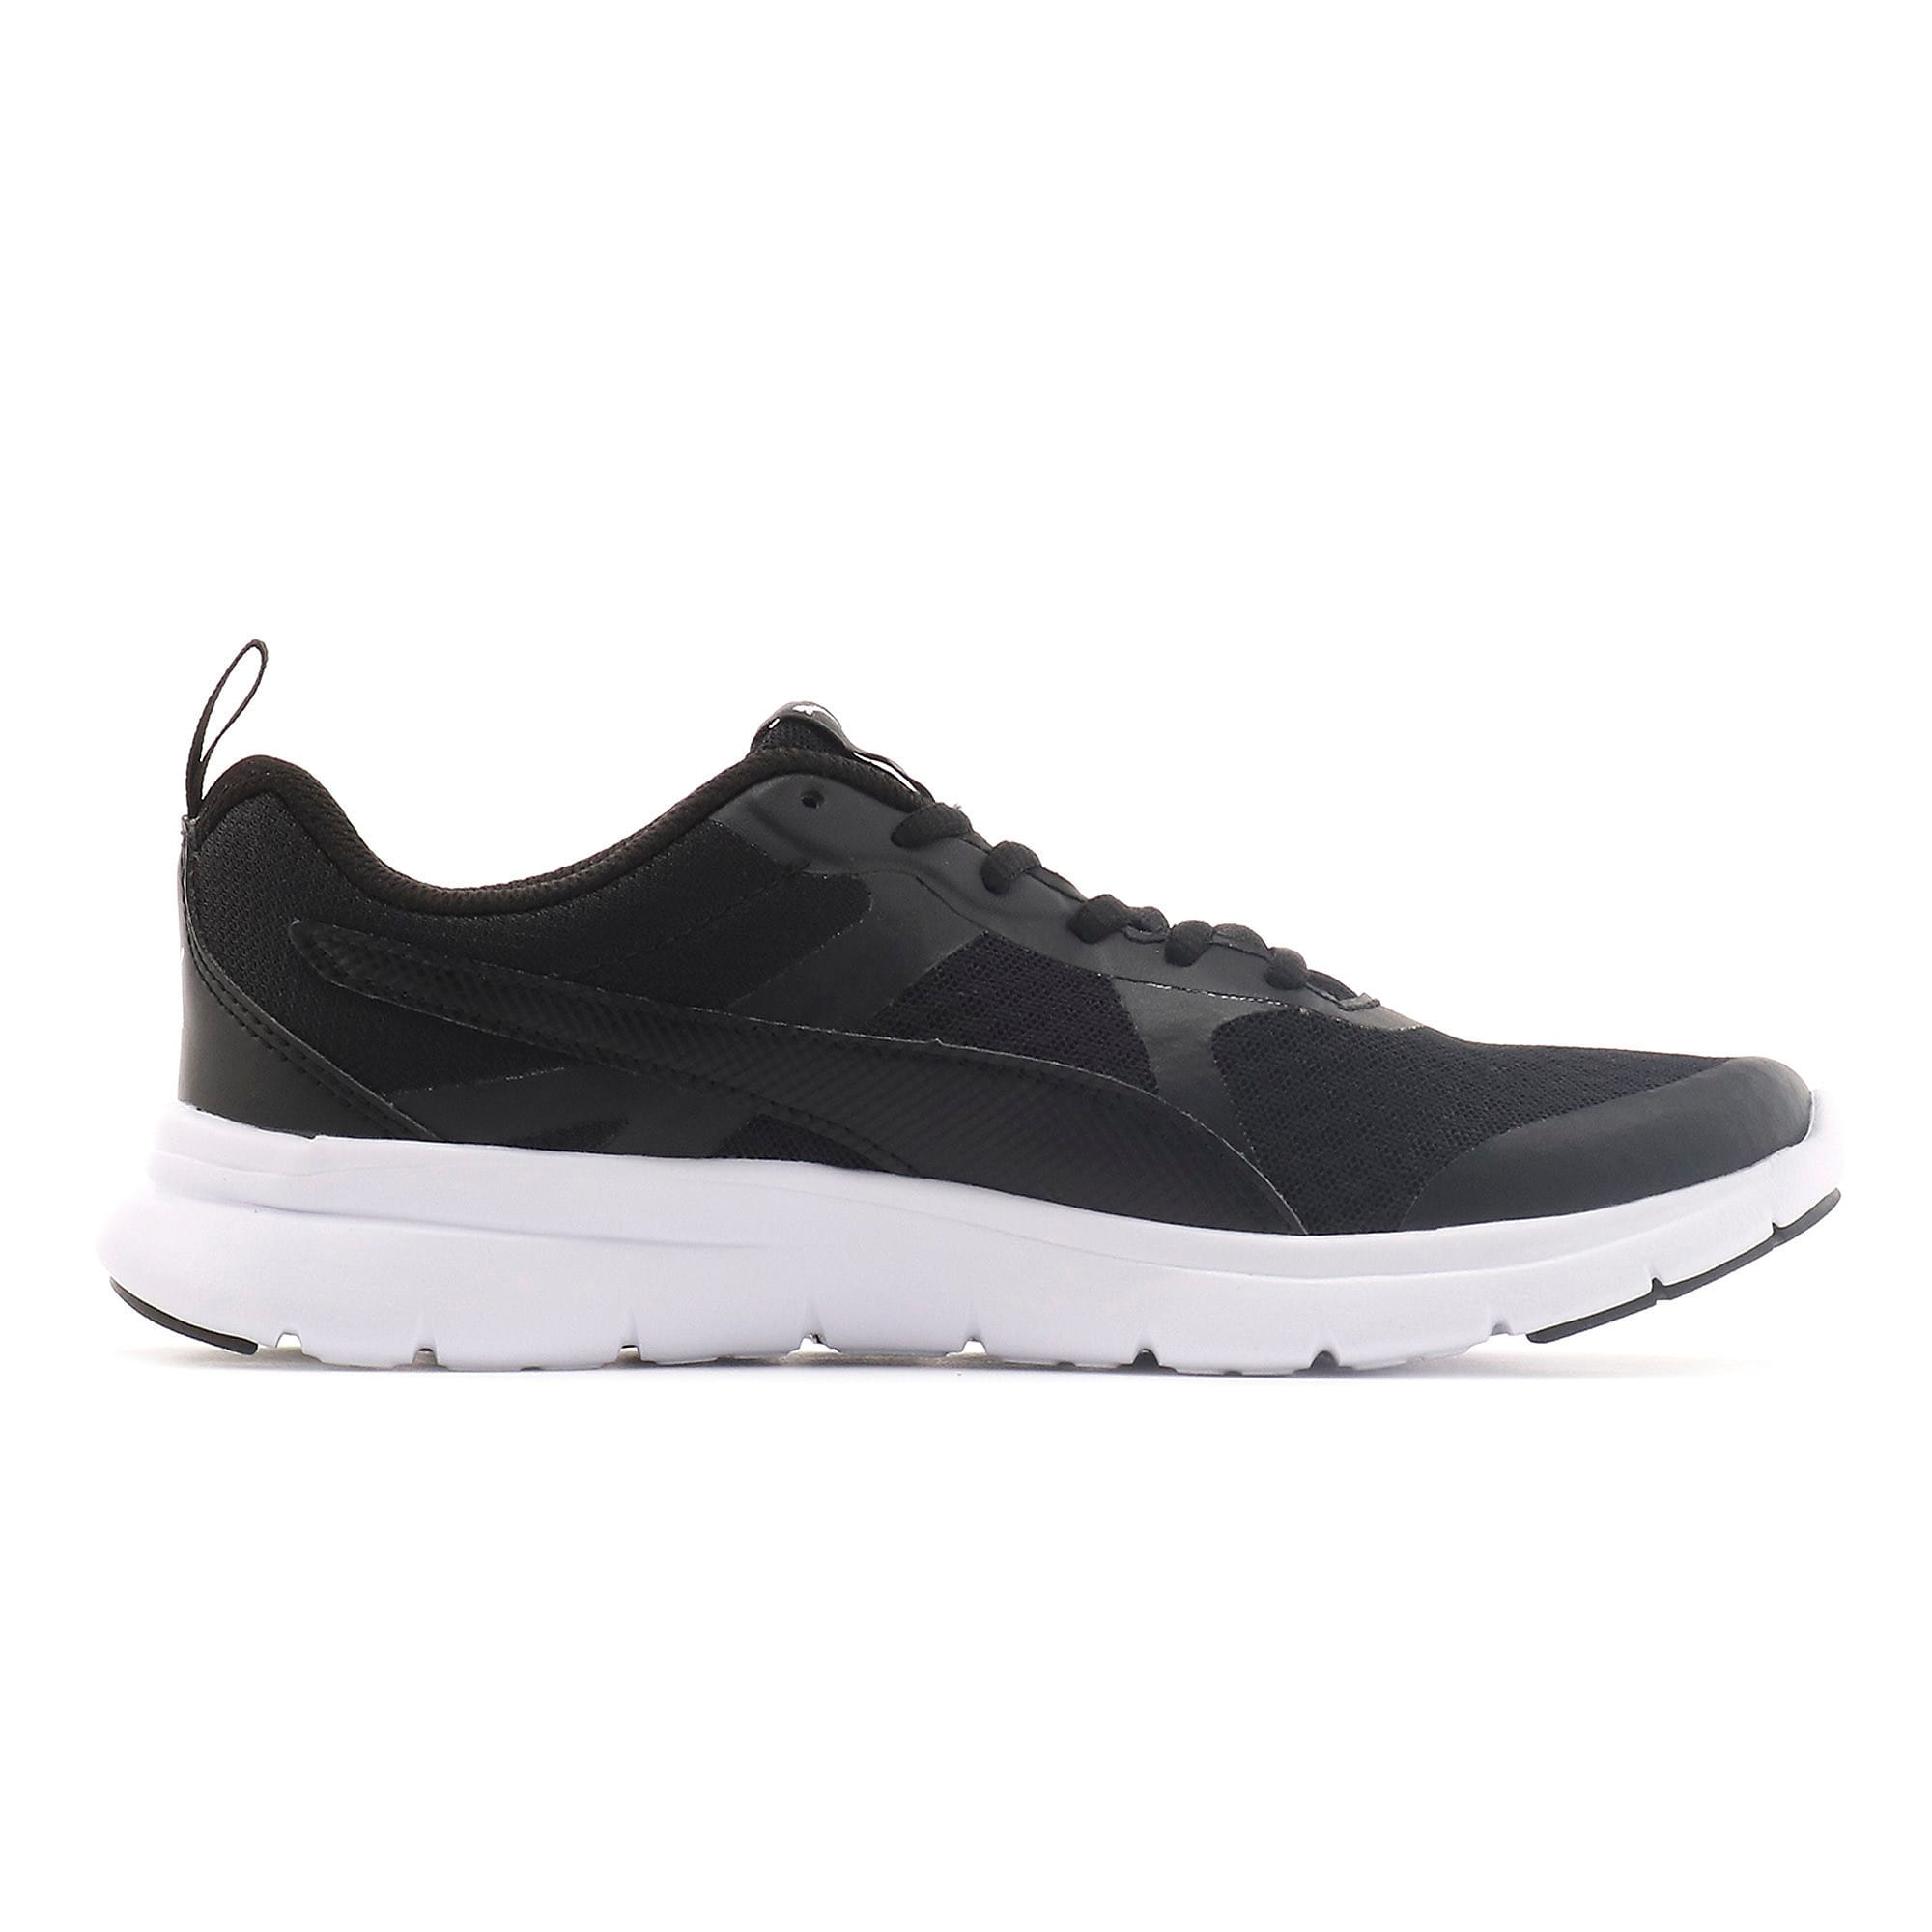 Thumbnail 5 of Essential Flex Youth Trainers, Puma Black-Puma Black, medium-IND